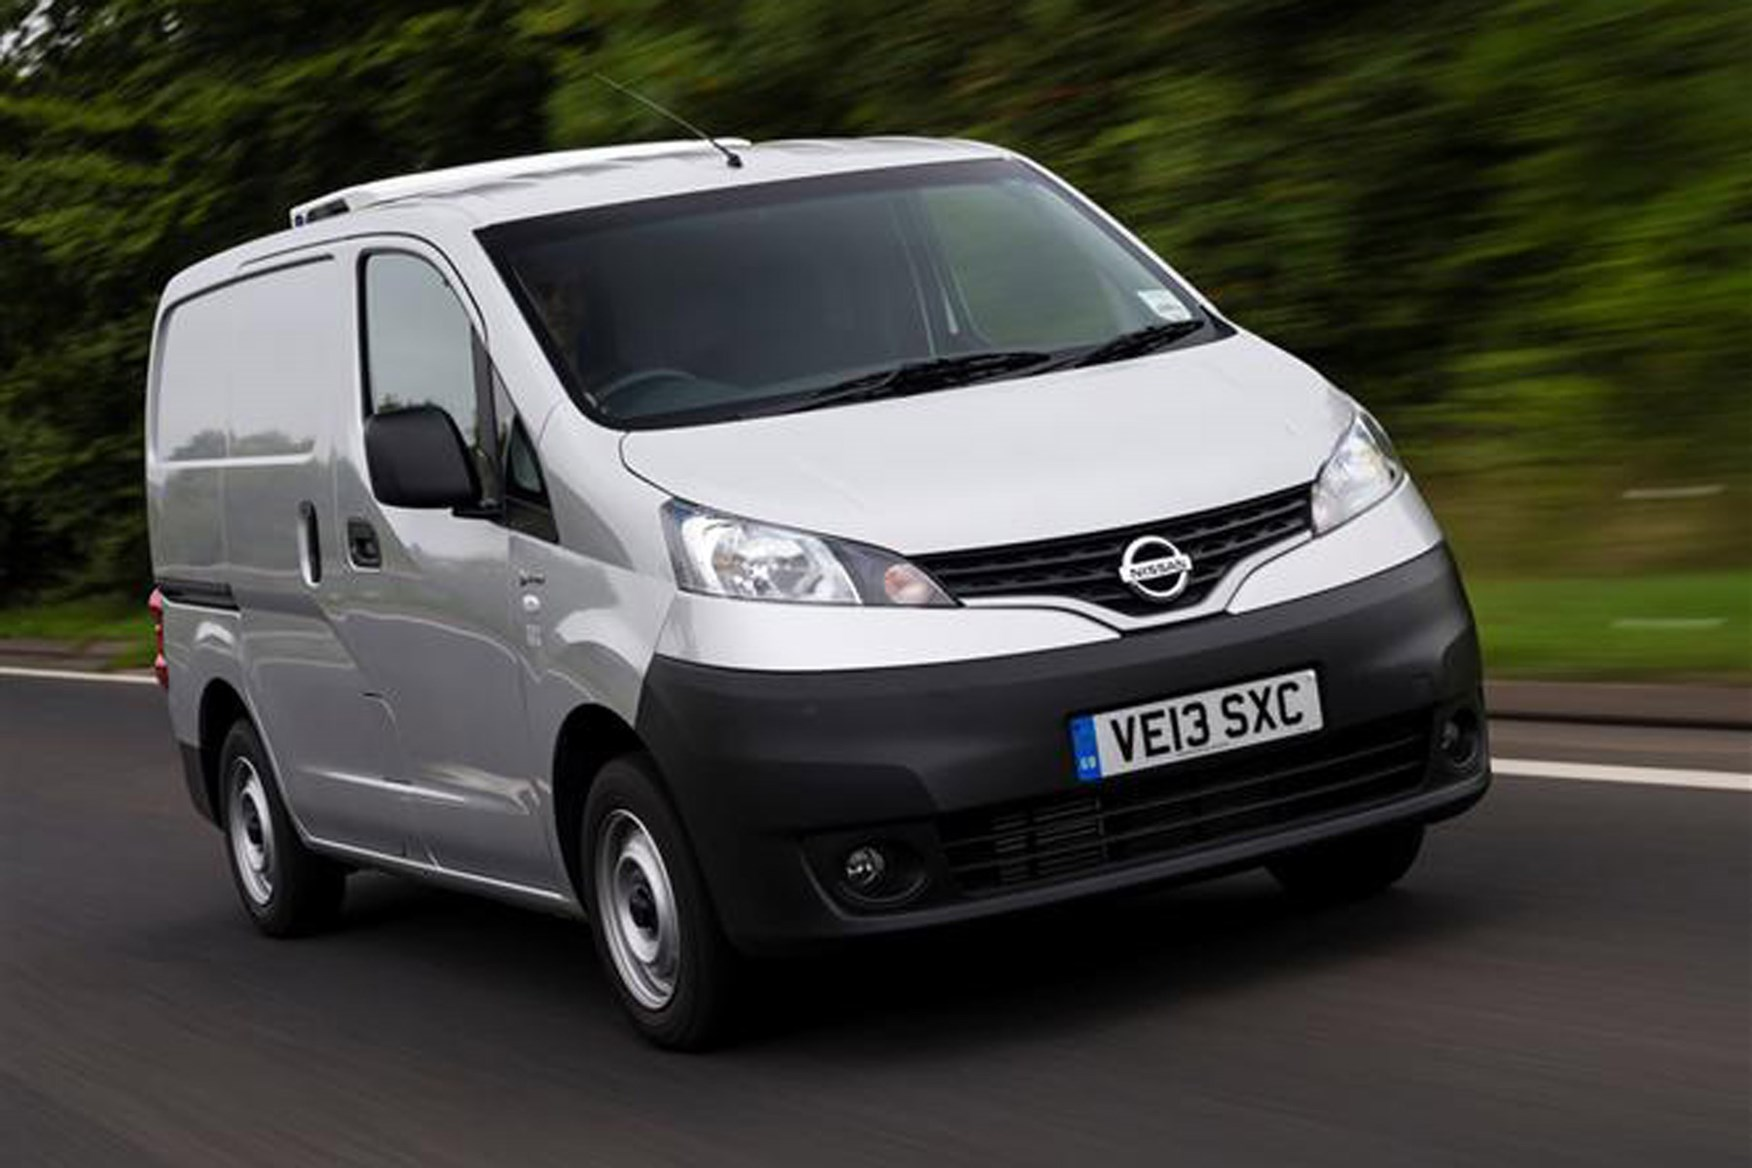 Nissan NV200 full review on Parkers Vans - exterior